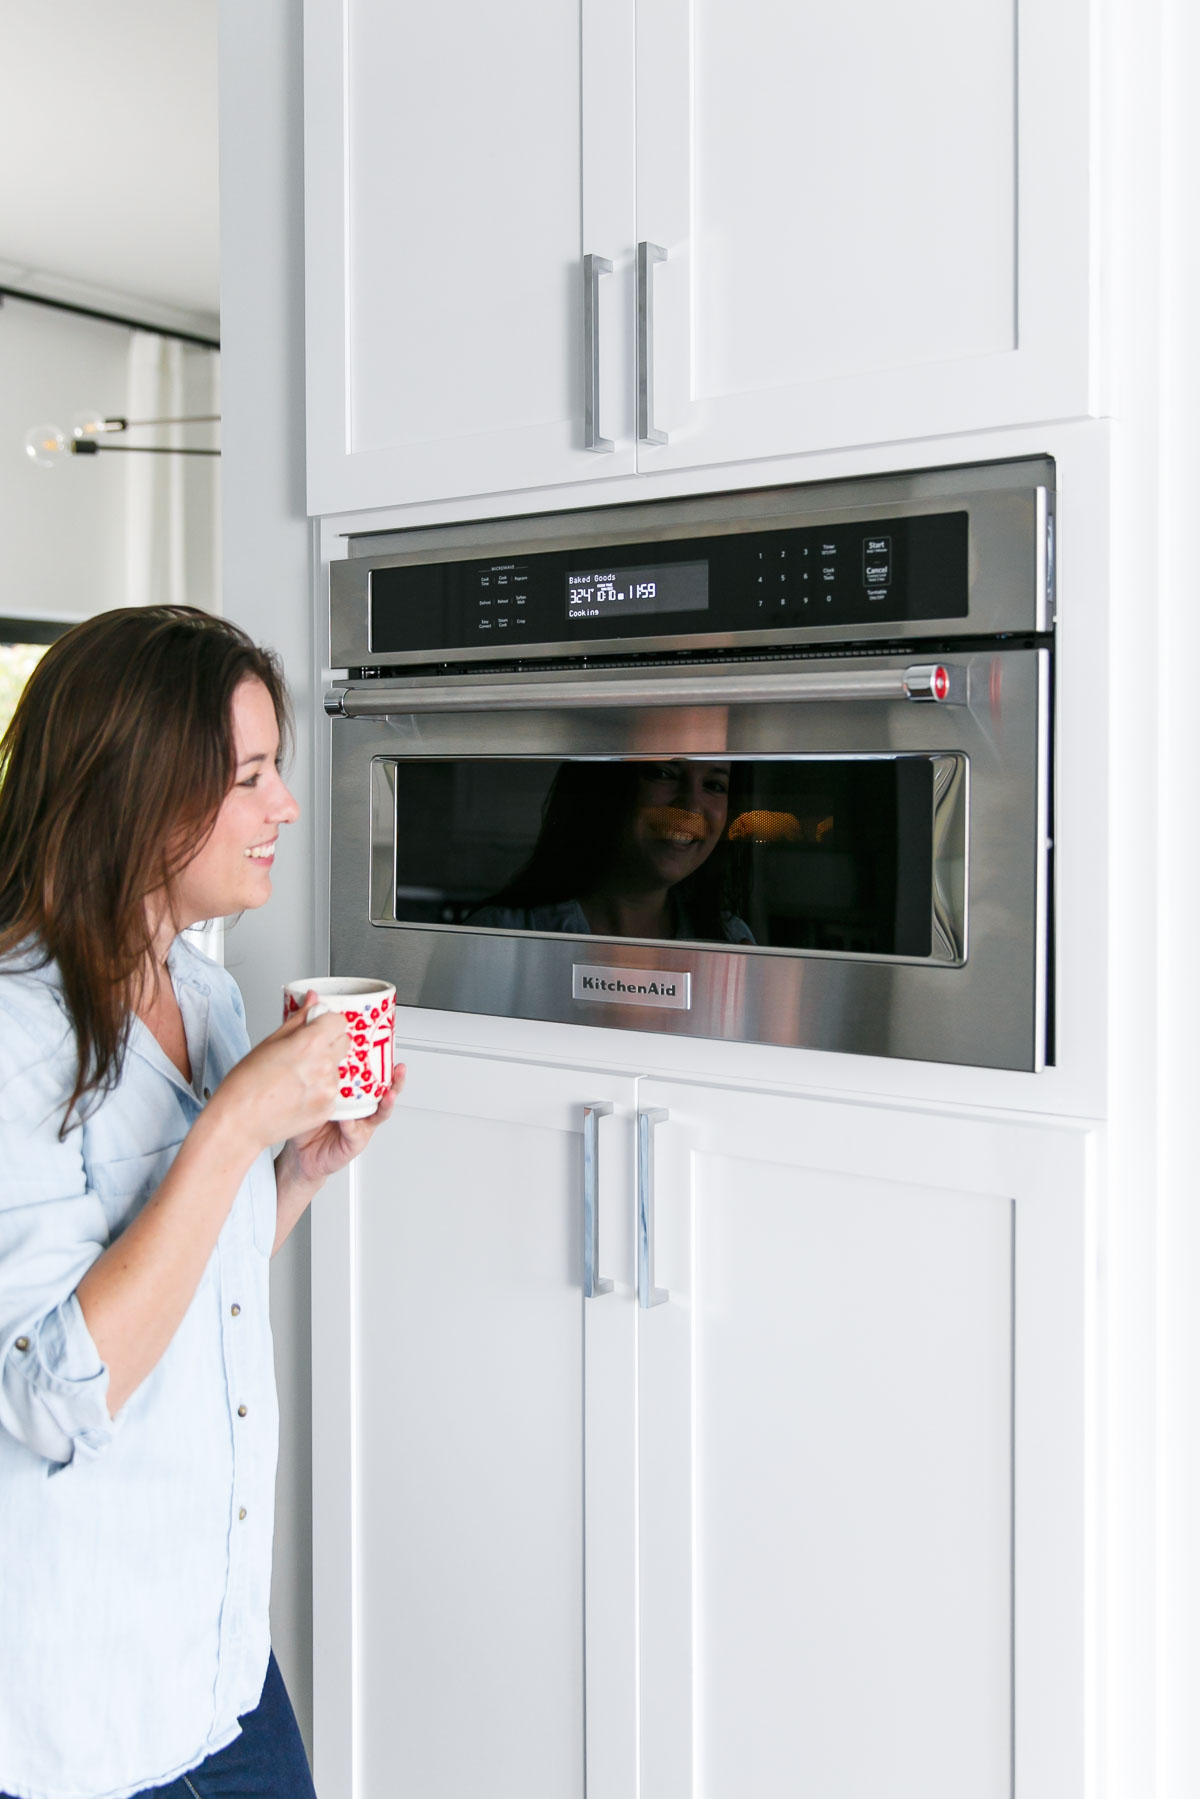 Kitchenaid Microwave Features